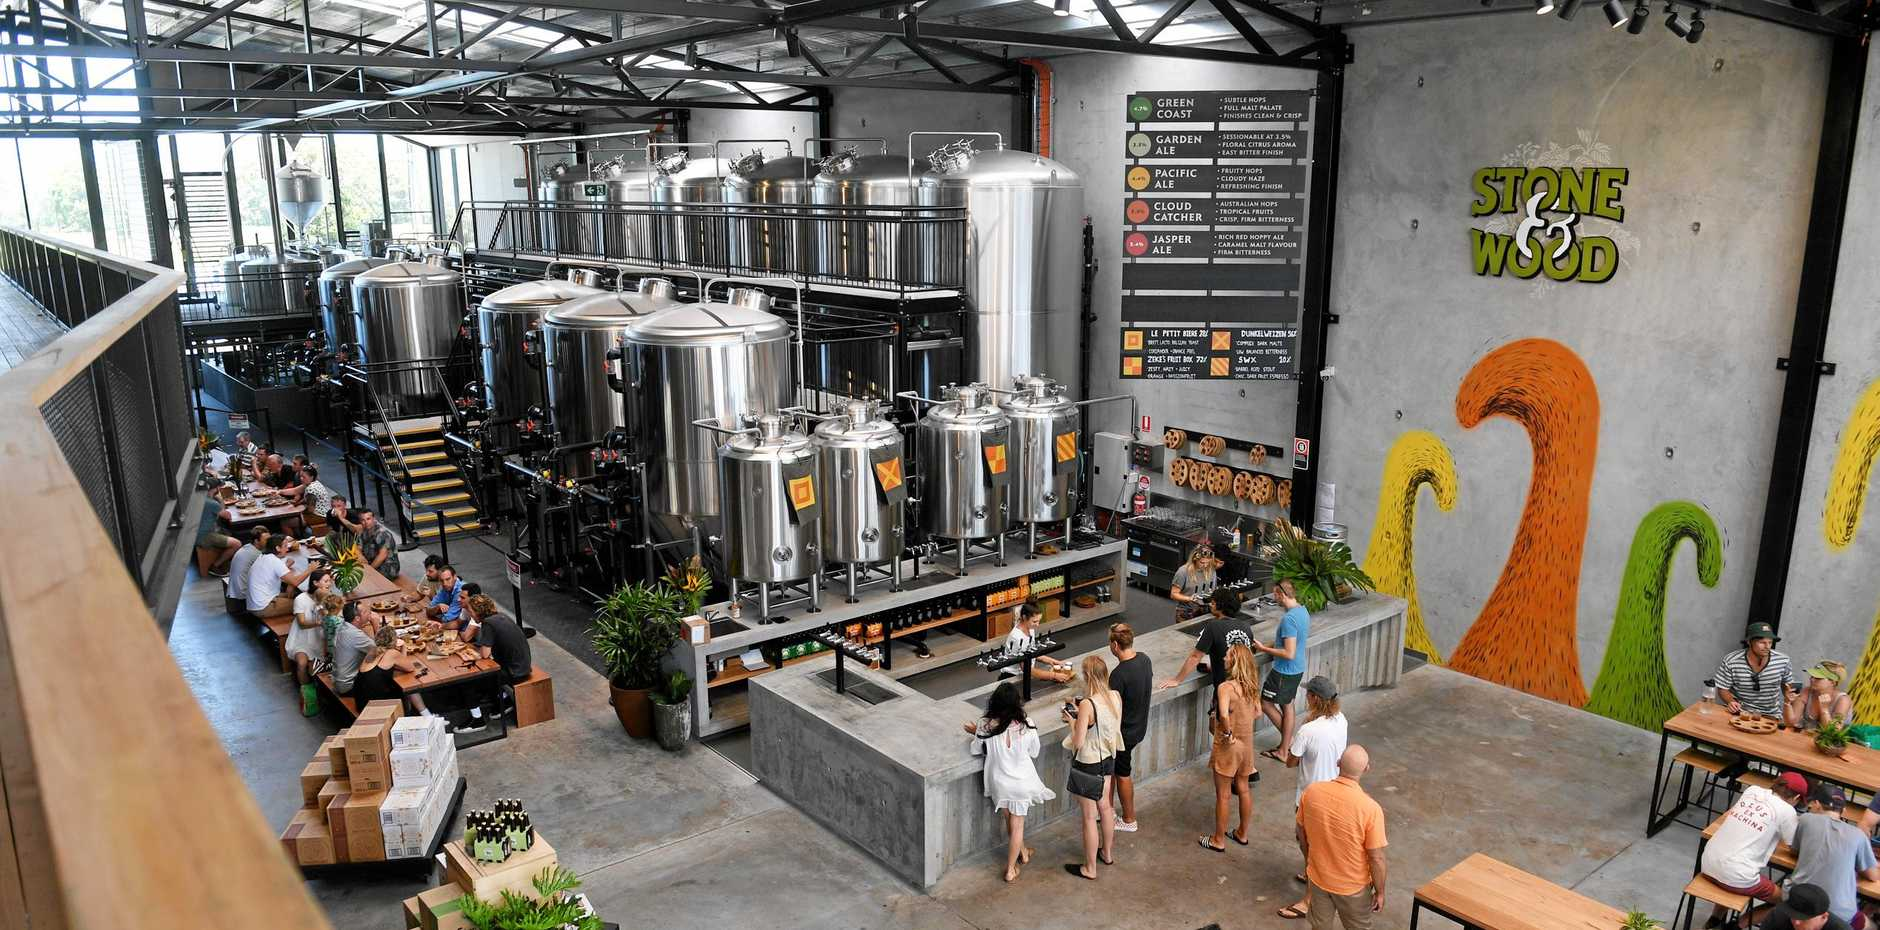 EXCITING TIMES: The new Stone & Wood Brewery is a space where you will be able to try out some